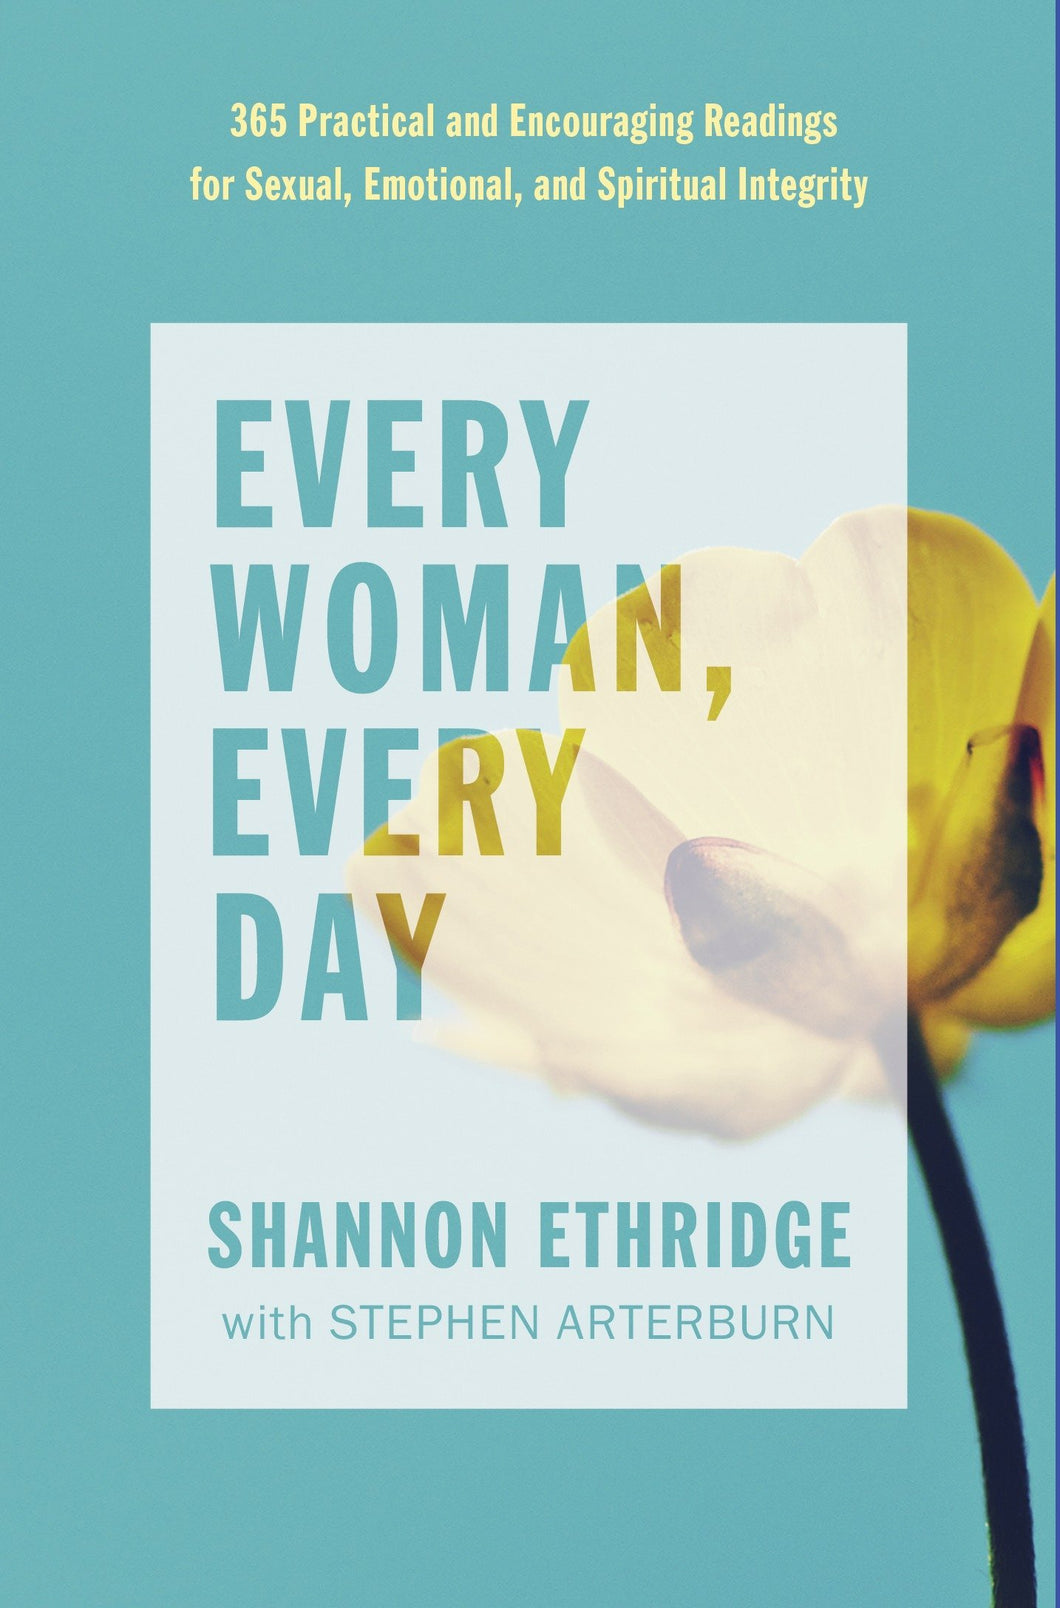 Every Woman, Every Day: 365 Practical and Encouraging Readings